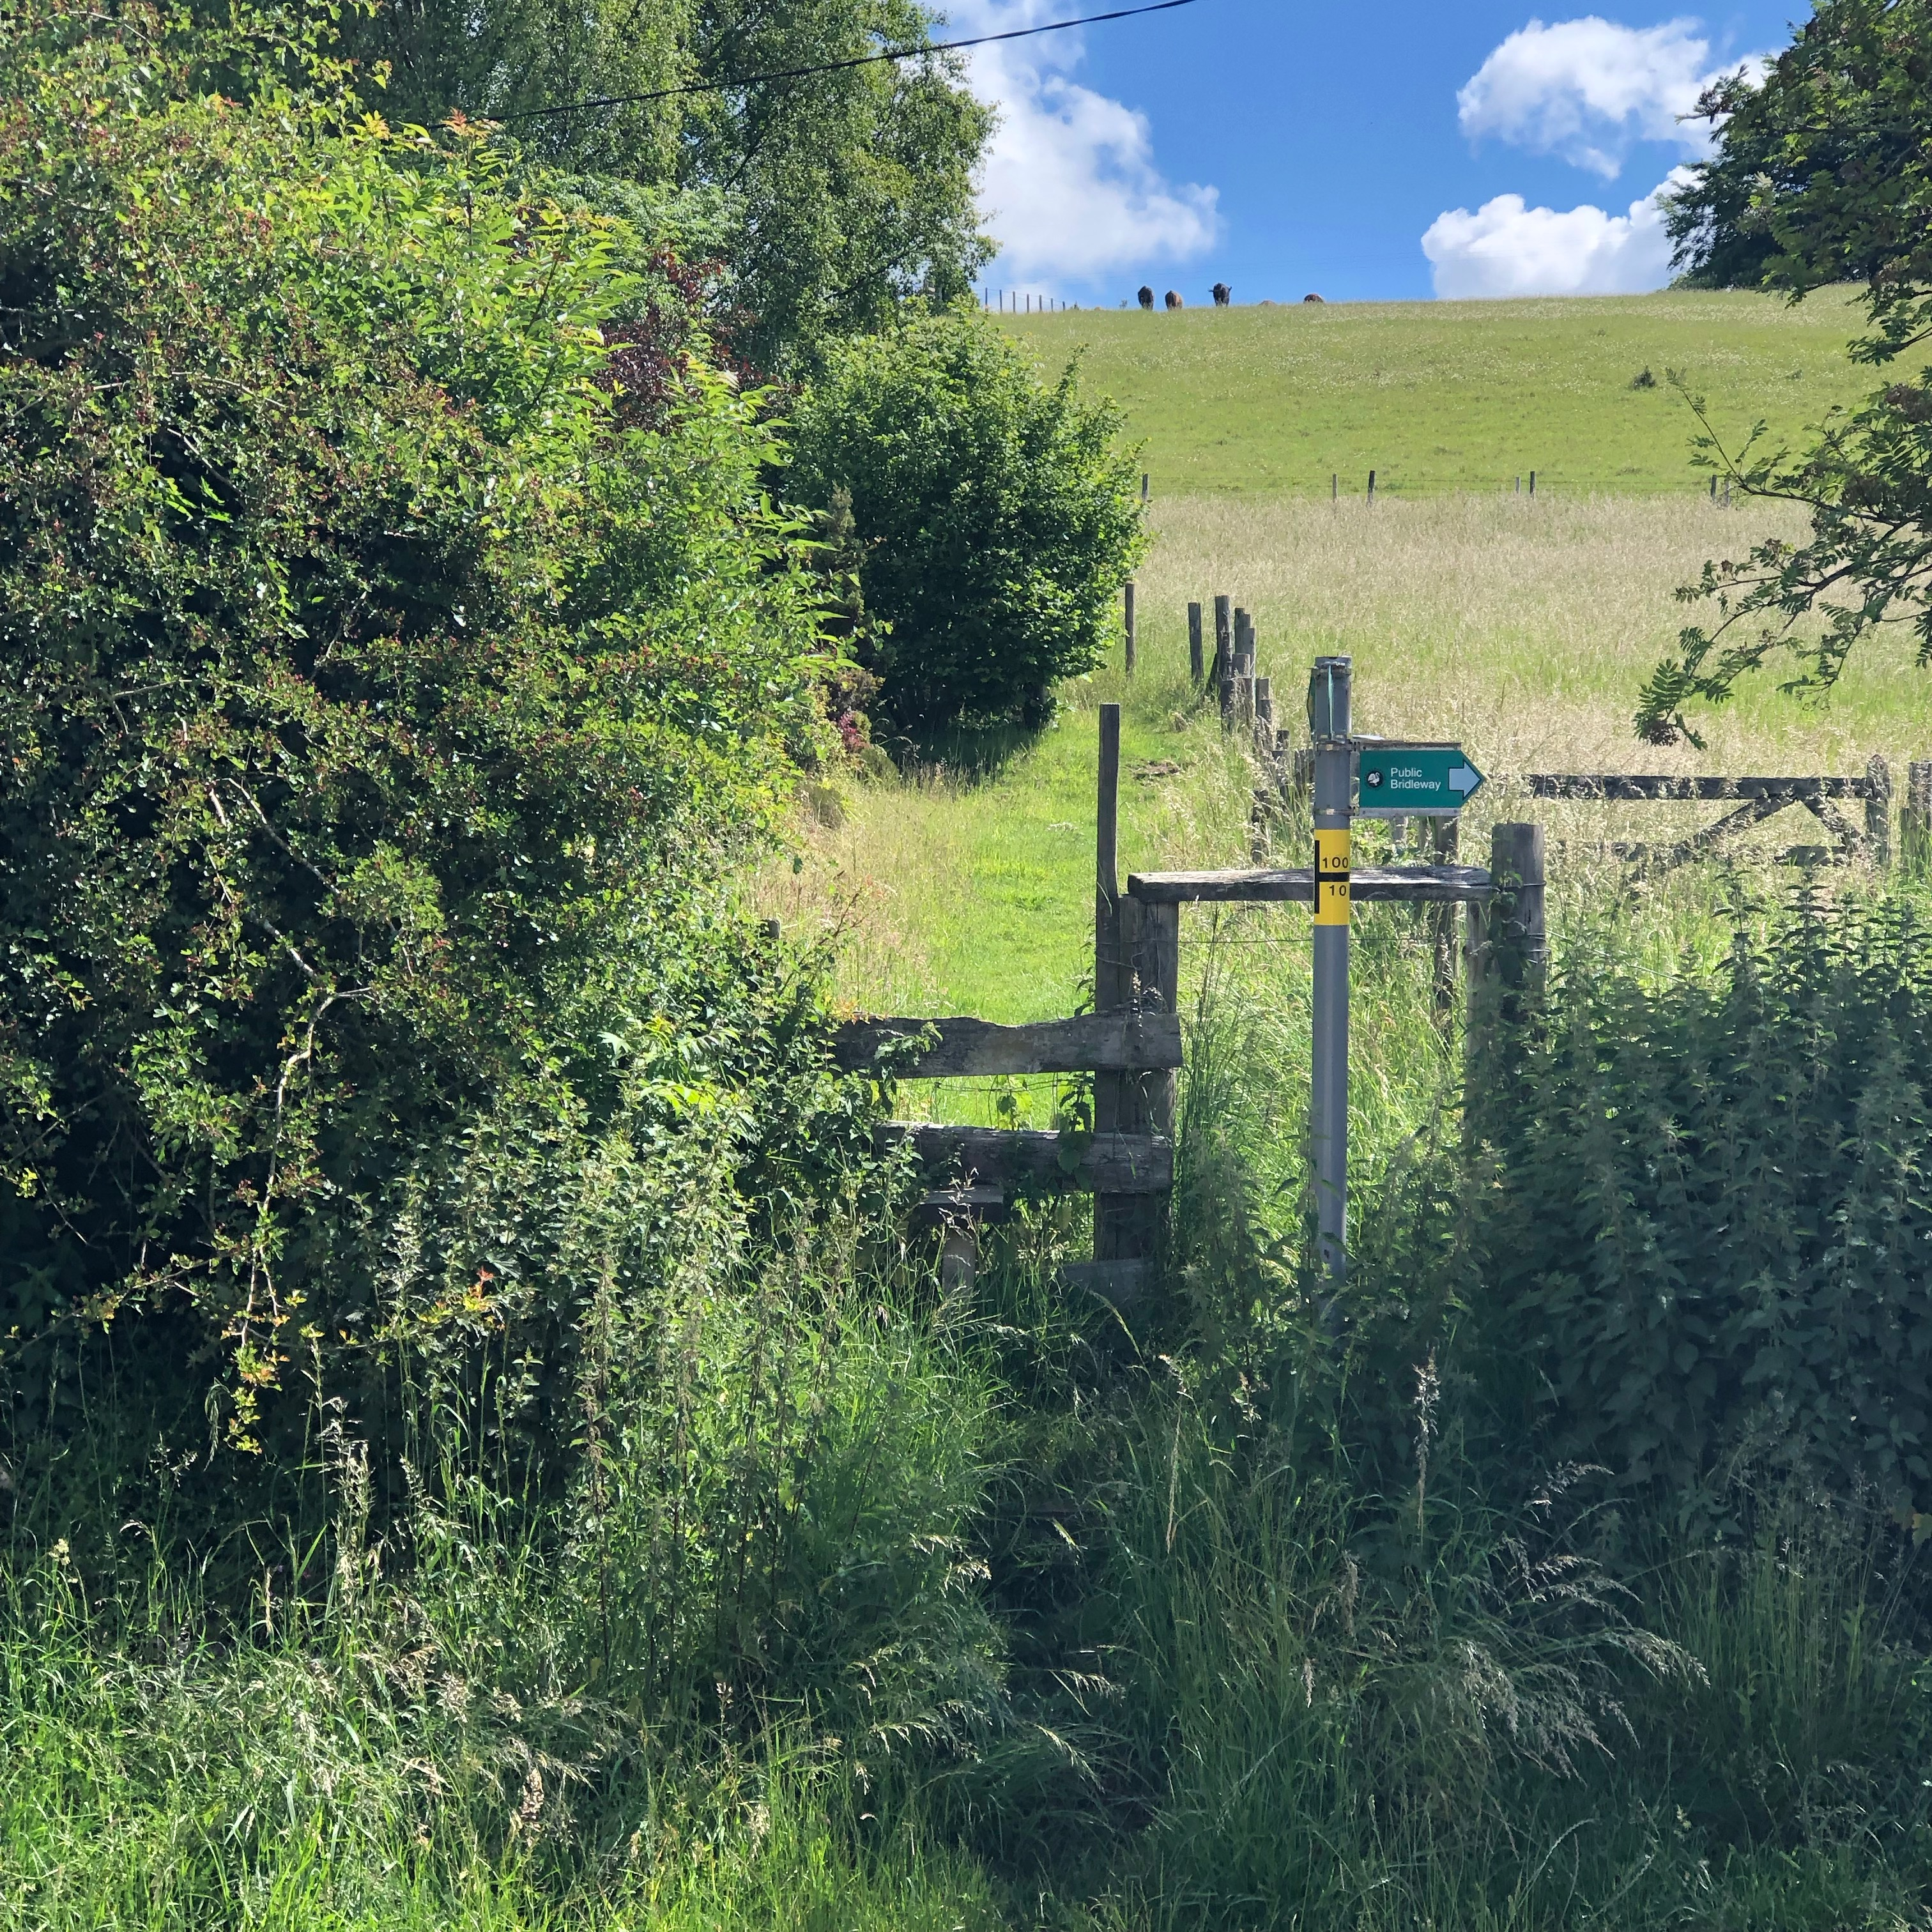 Stile Wendover Hill. Steep incline.